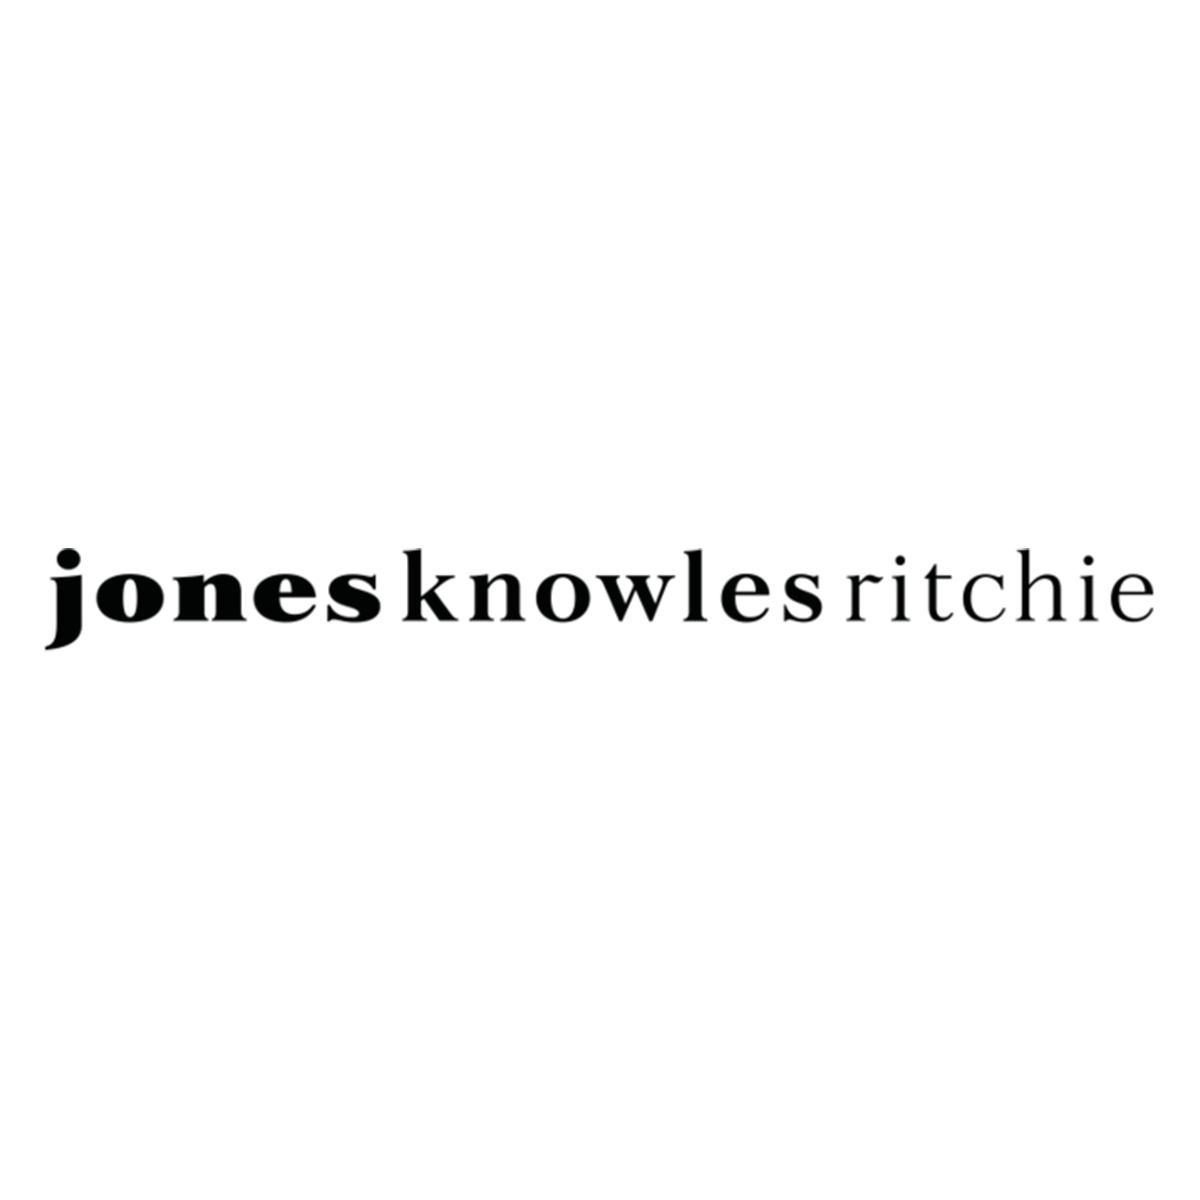 jones knowles ritchie